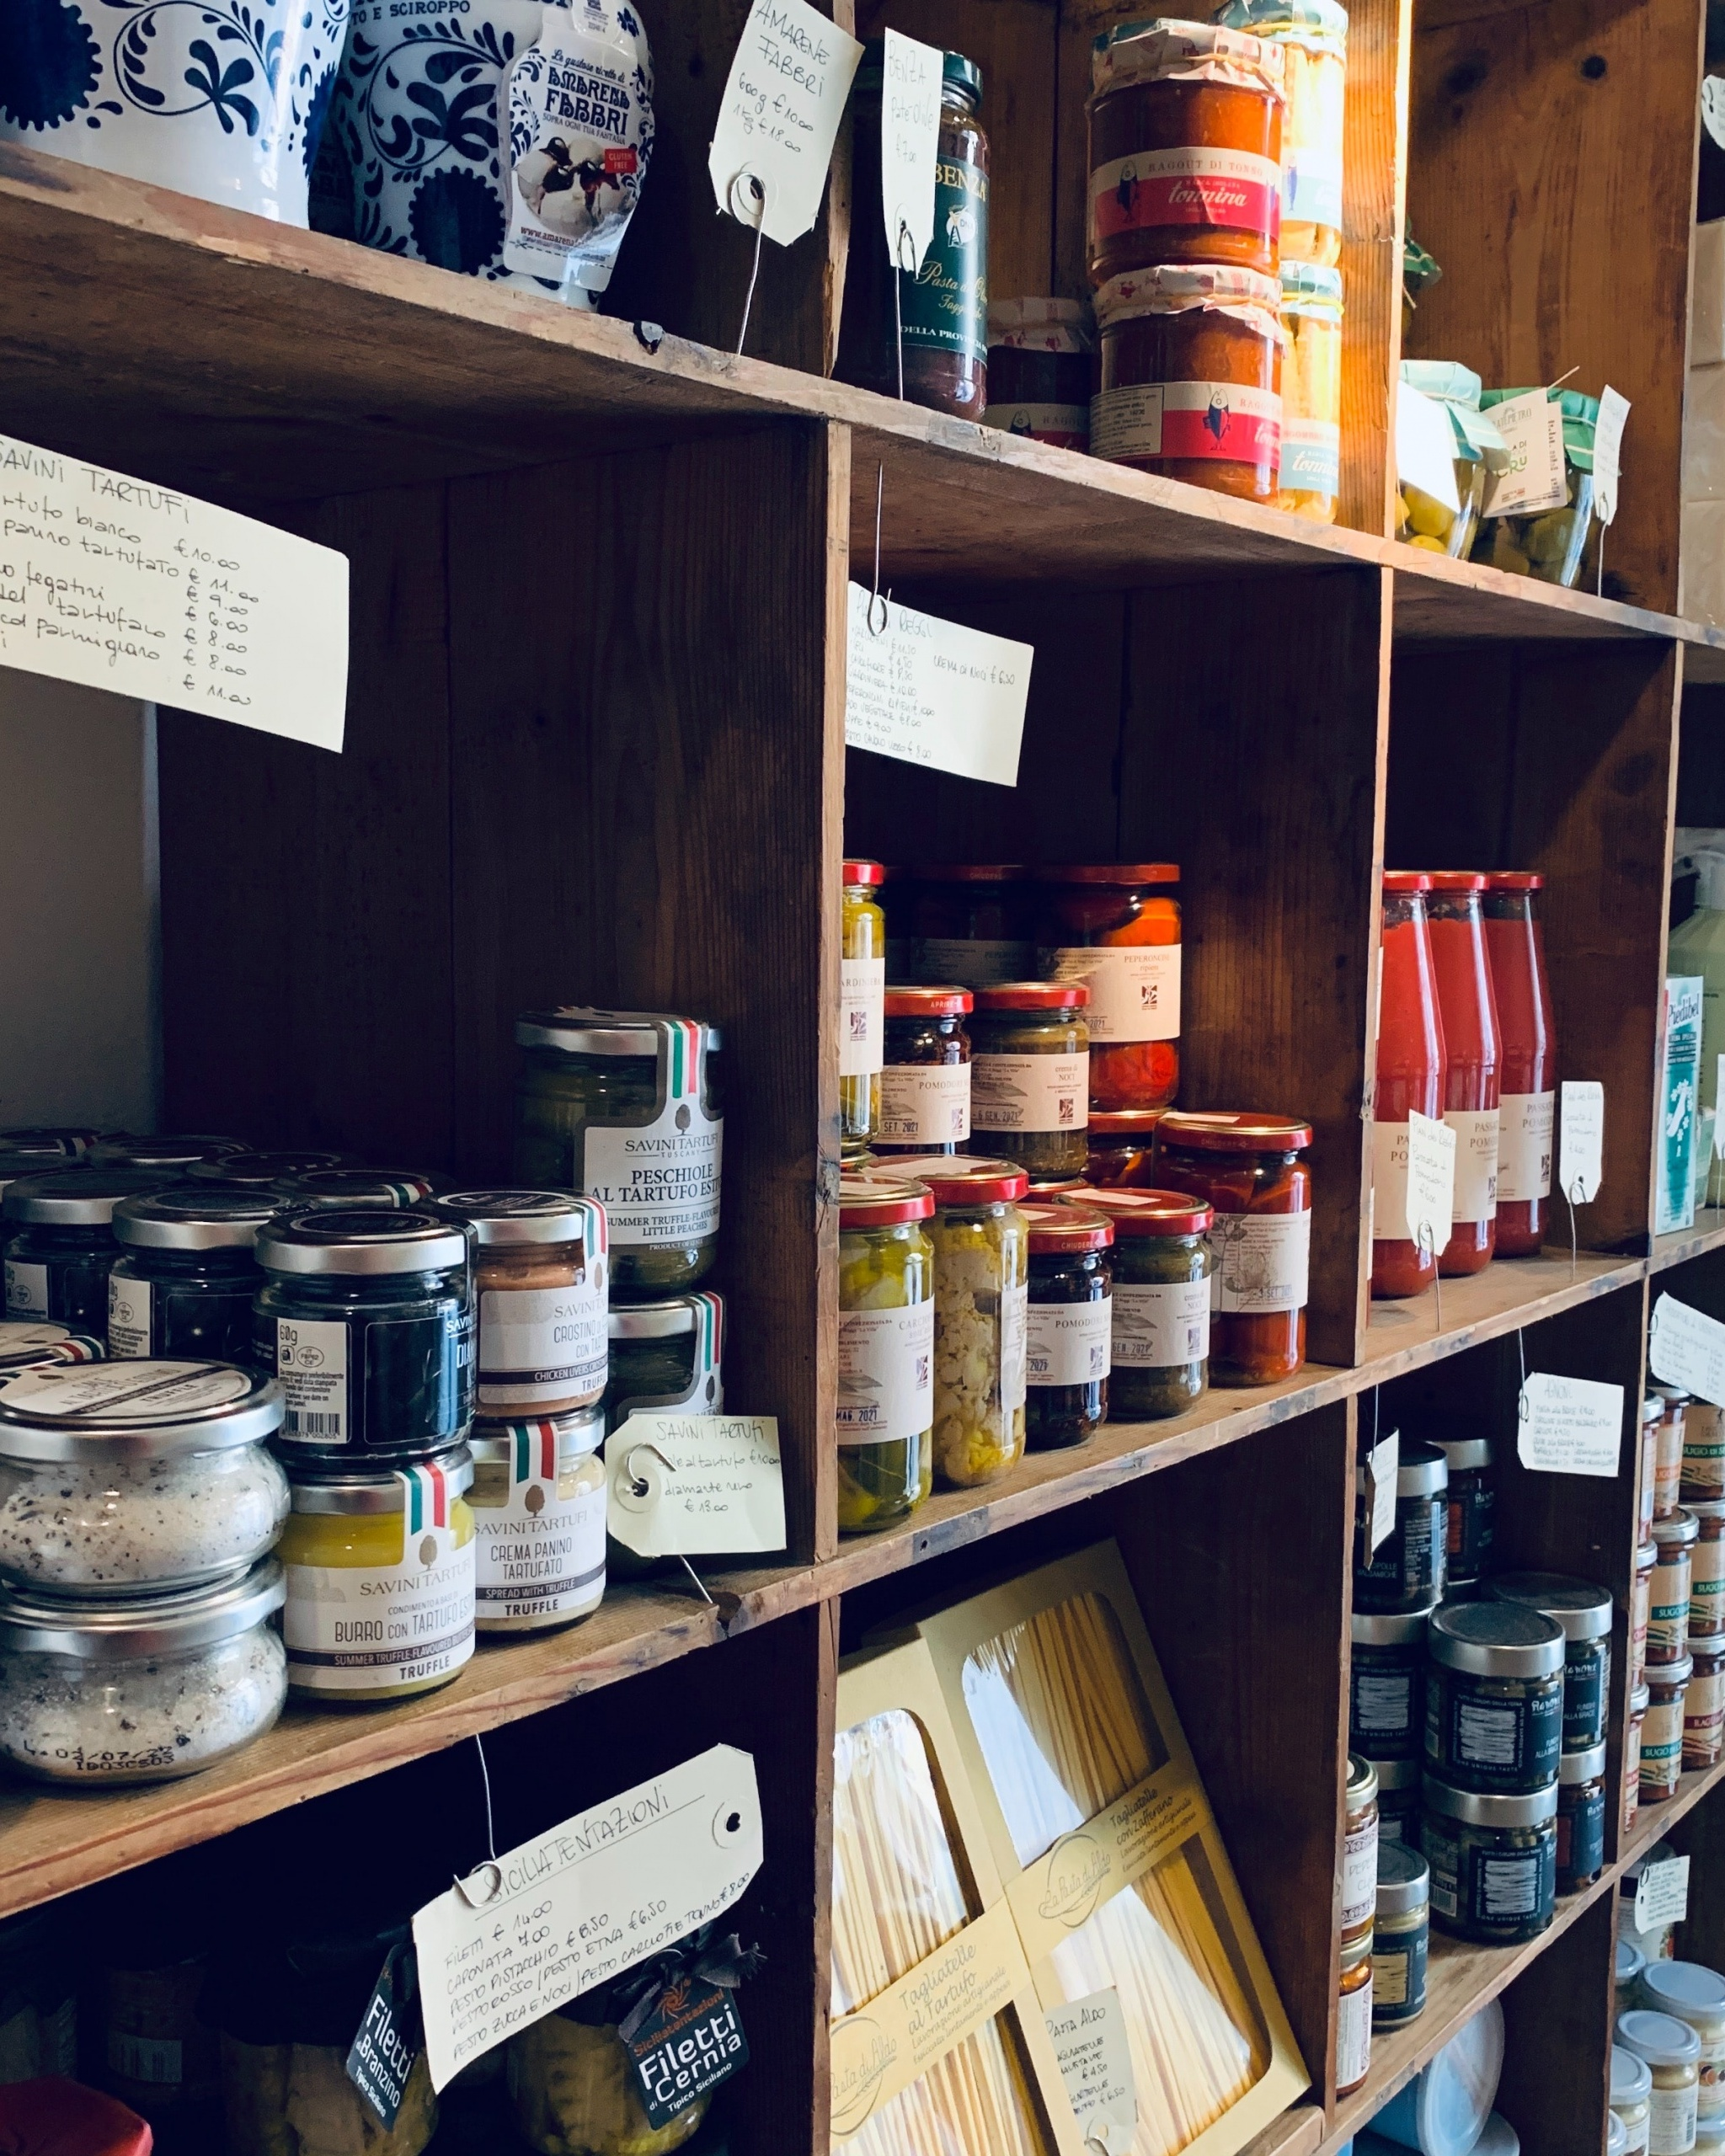 A stocked pantry full of canned goods.